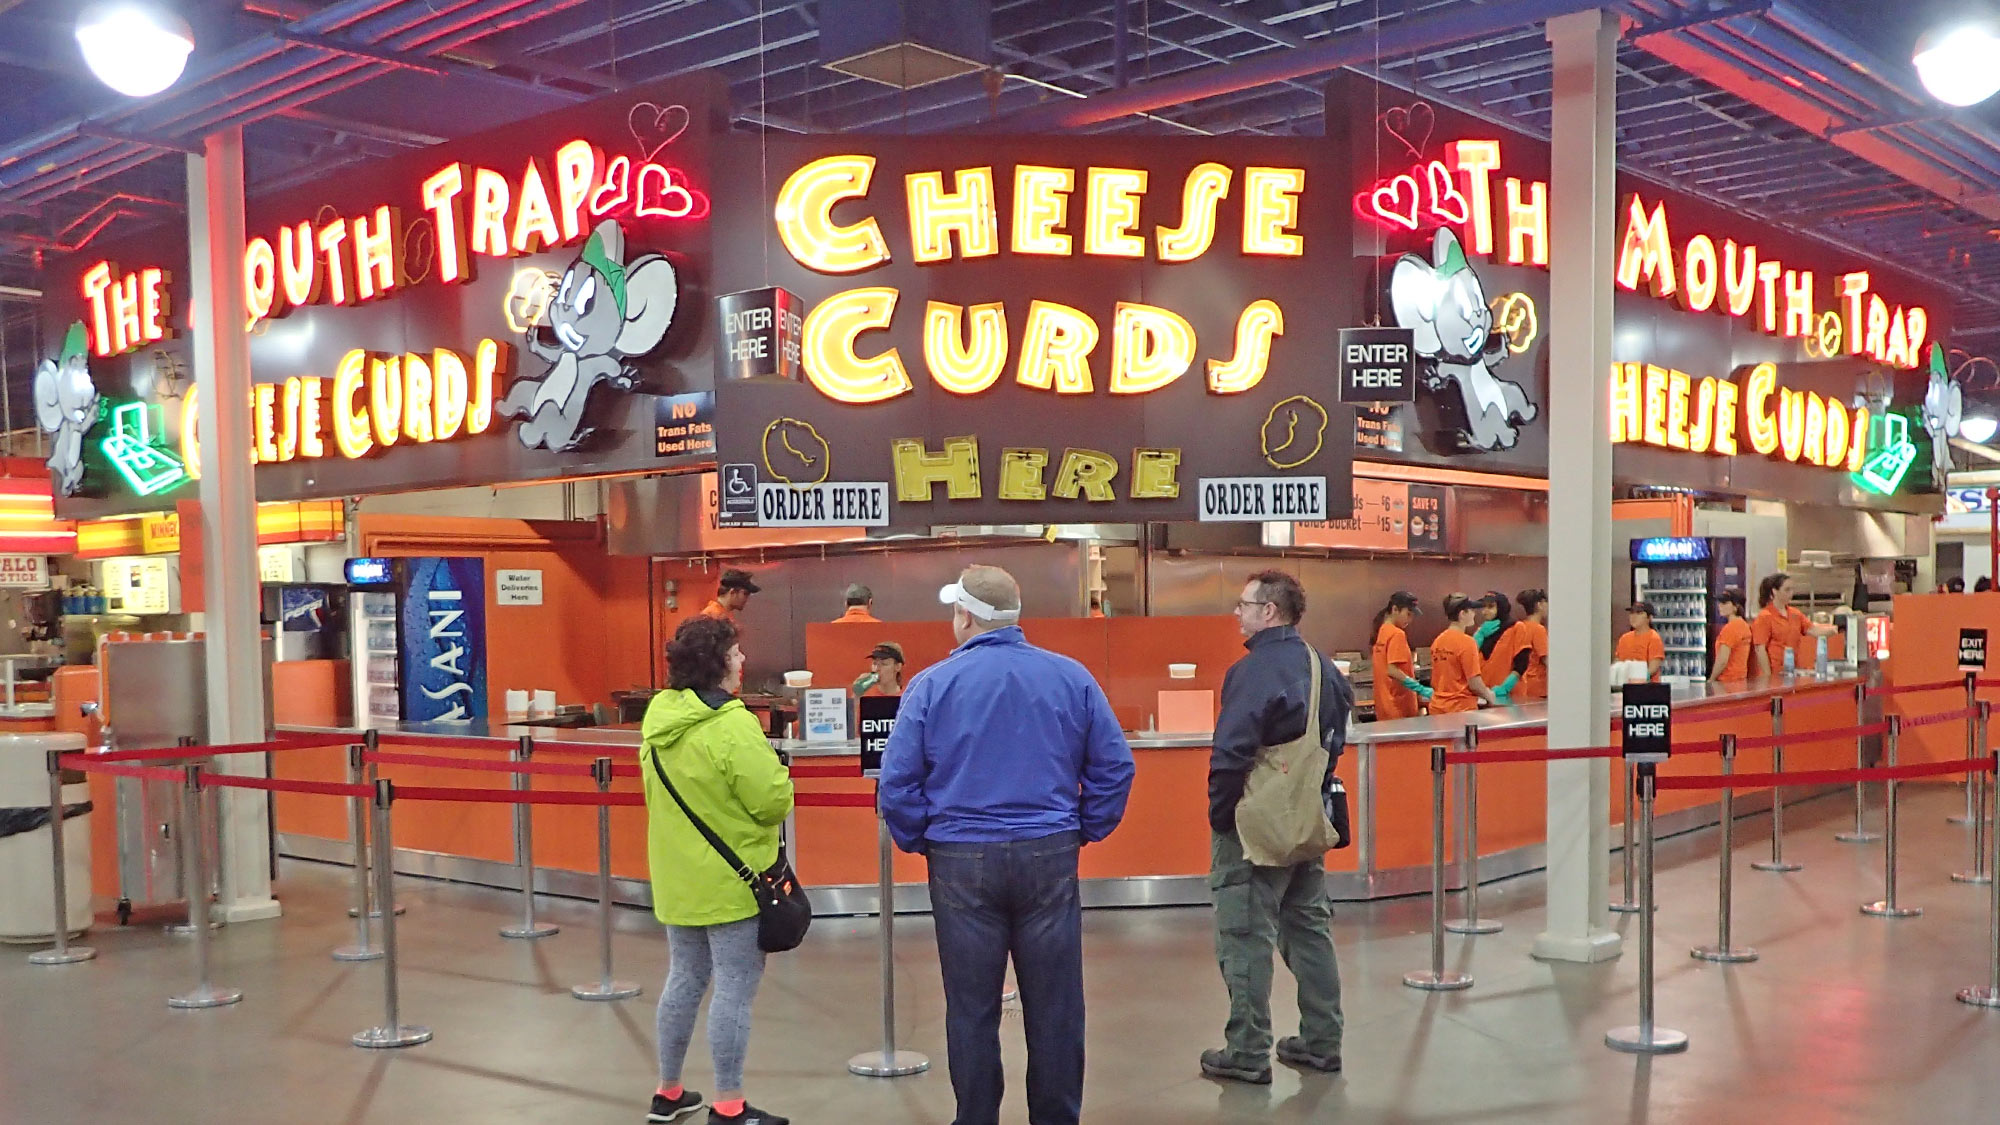 Mouth Trap Cheese Curds